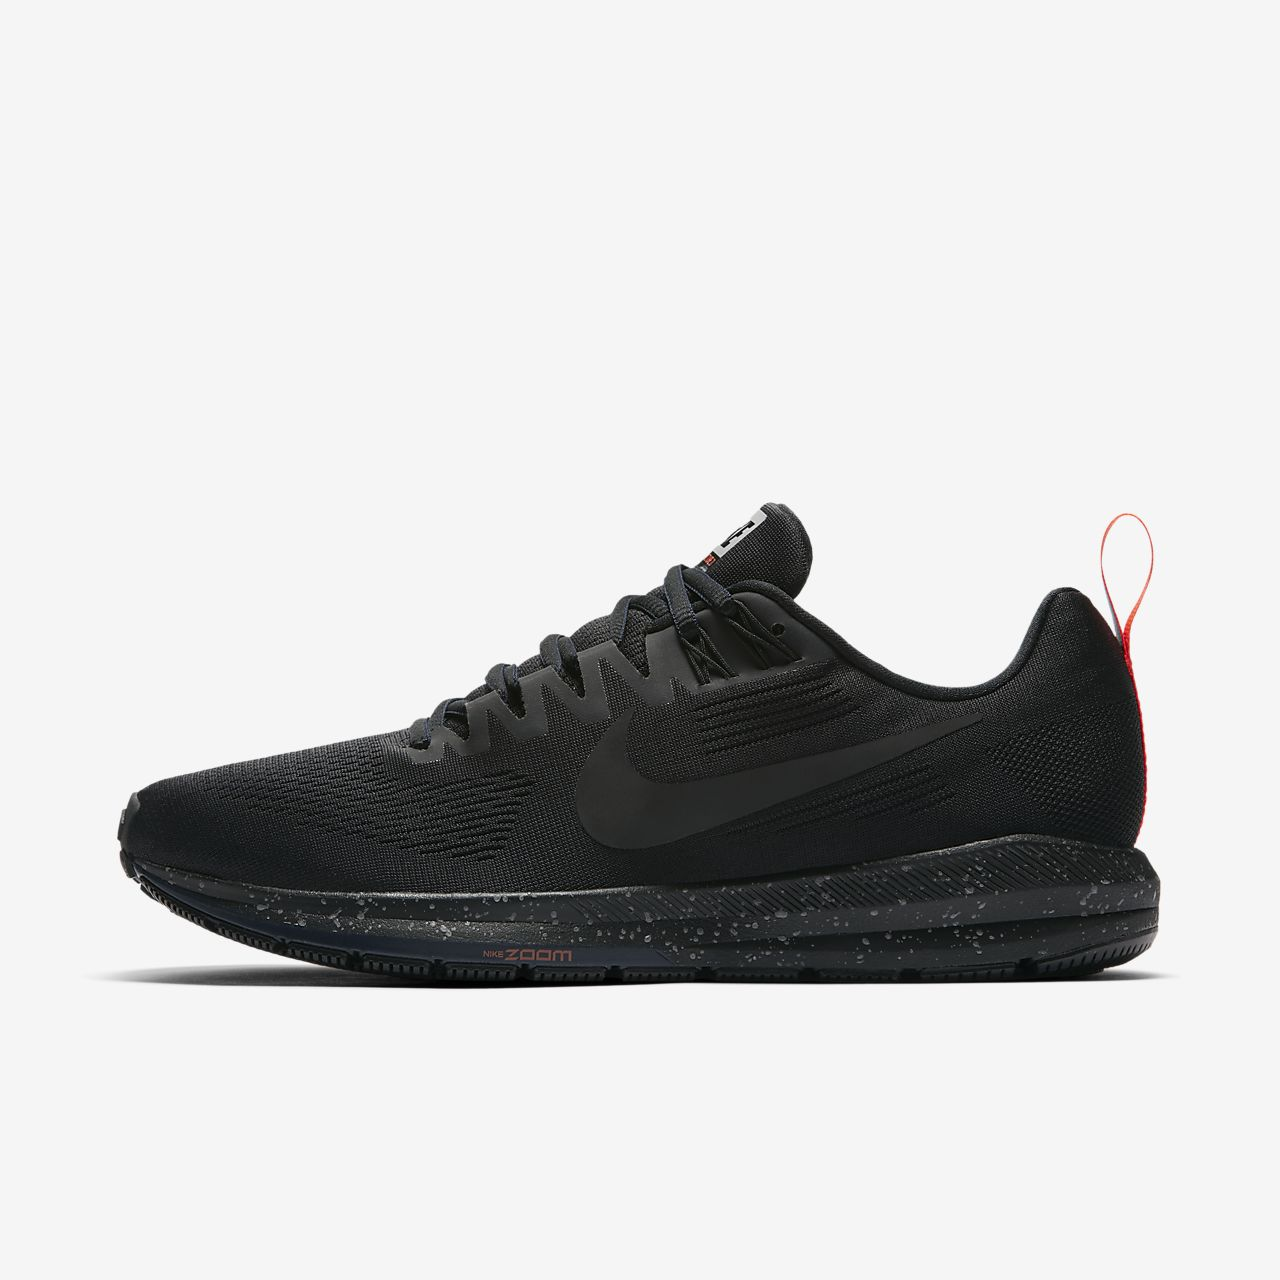 ... Nike Air Zoom Structure 21 Shield Men's Running Shoe